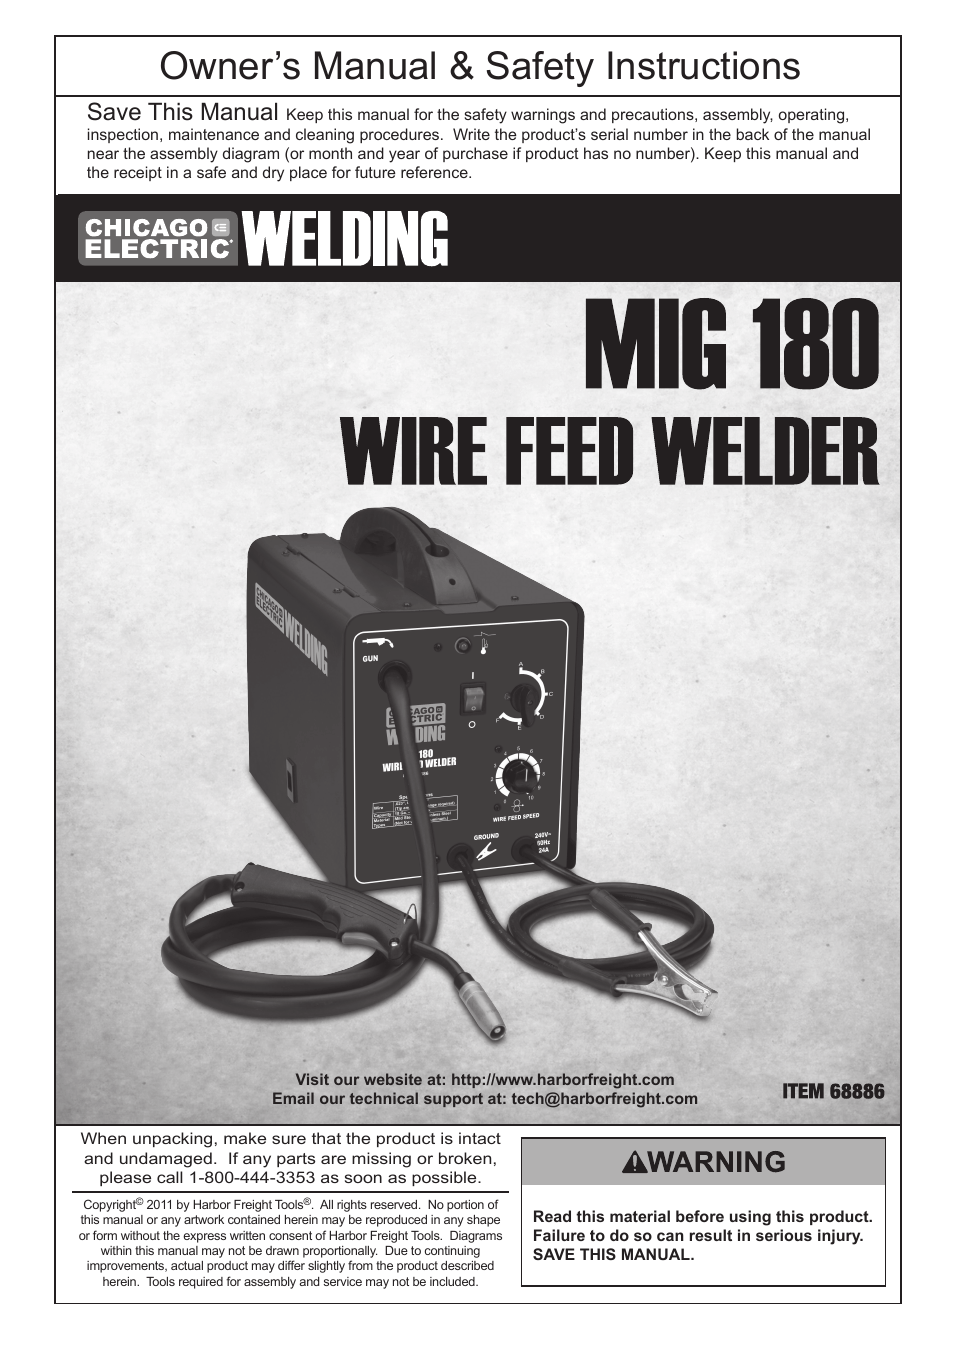 Chicago Electric 170 Mig Welder Wiring Diagram Get Free Image About